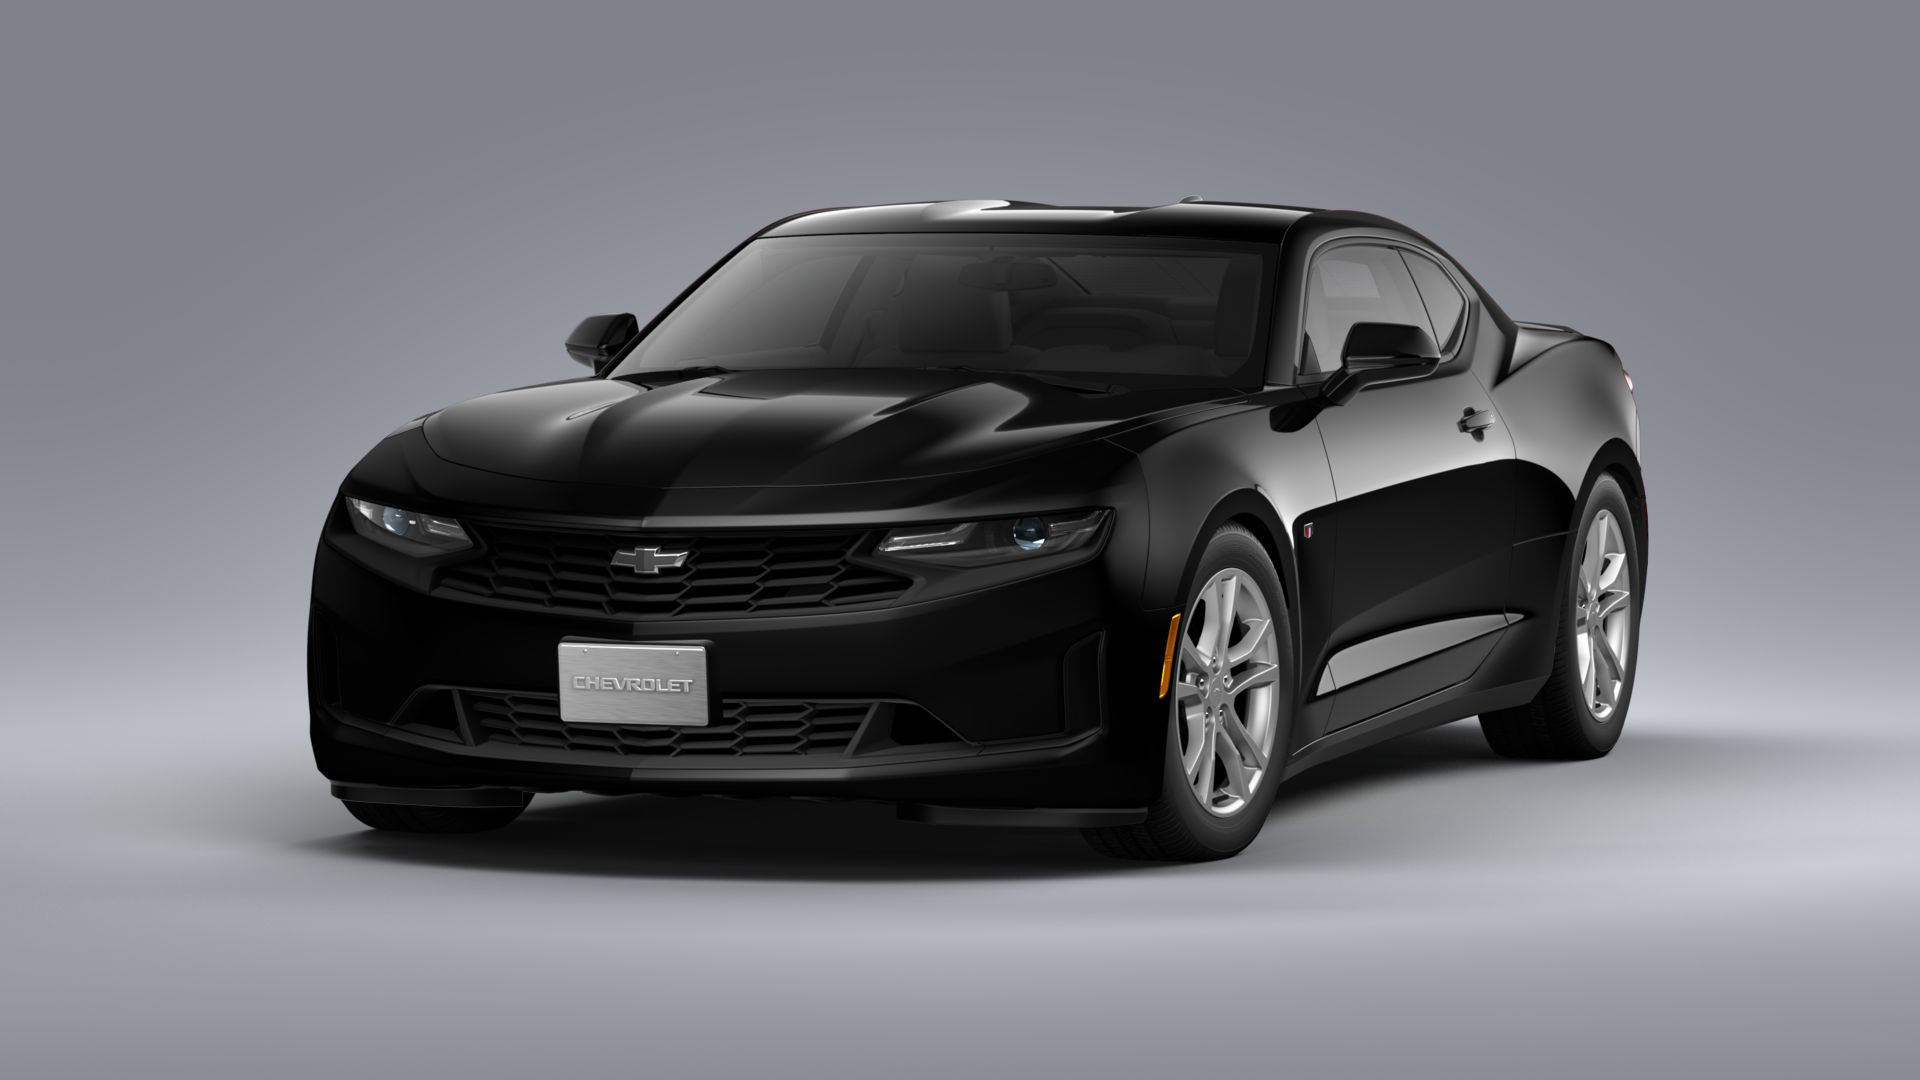 2020 Chevrolet Camaro 1LS Car